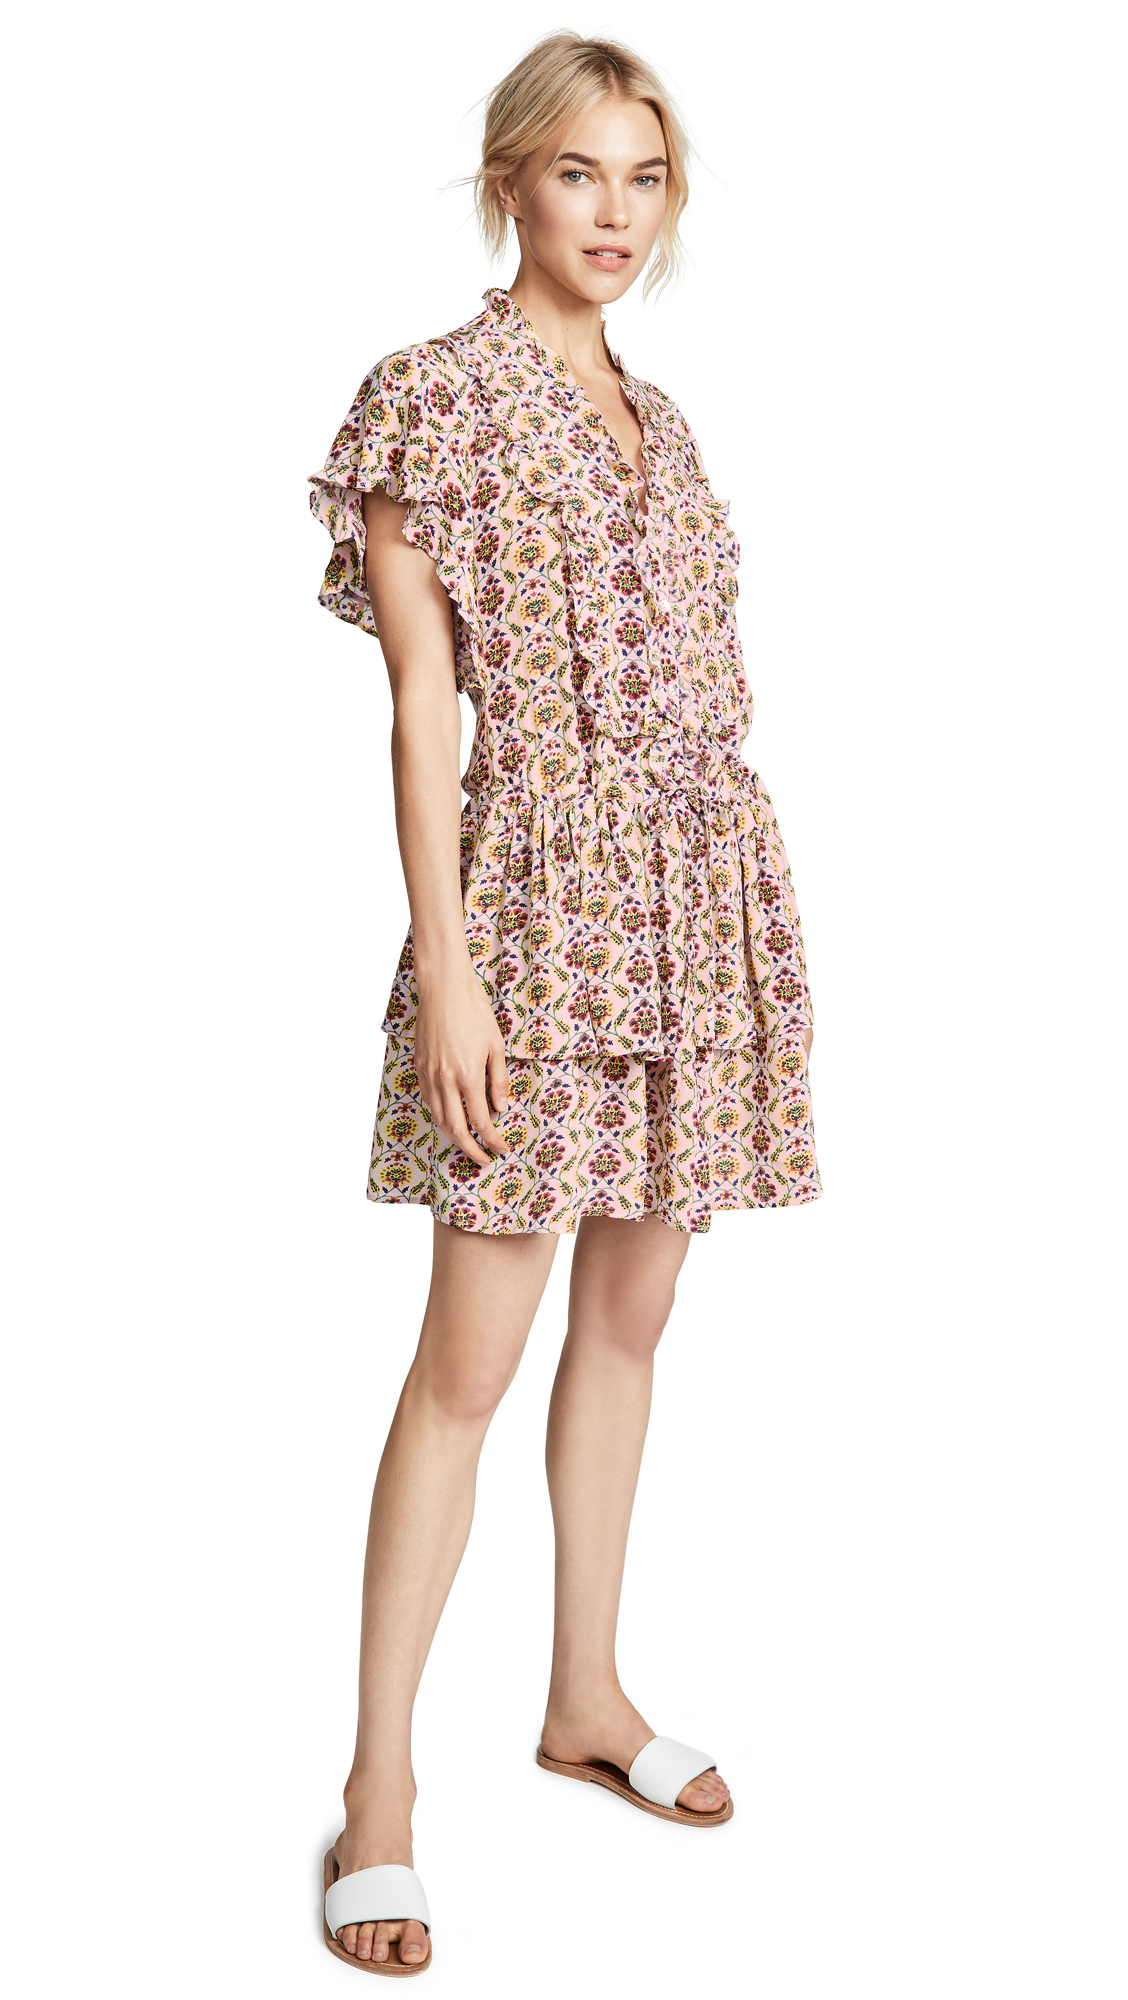 BANJANAN Suki Dress in Benares Tulip Lilac